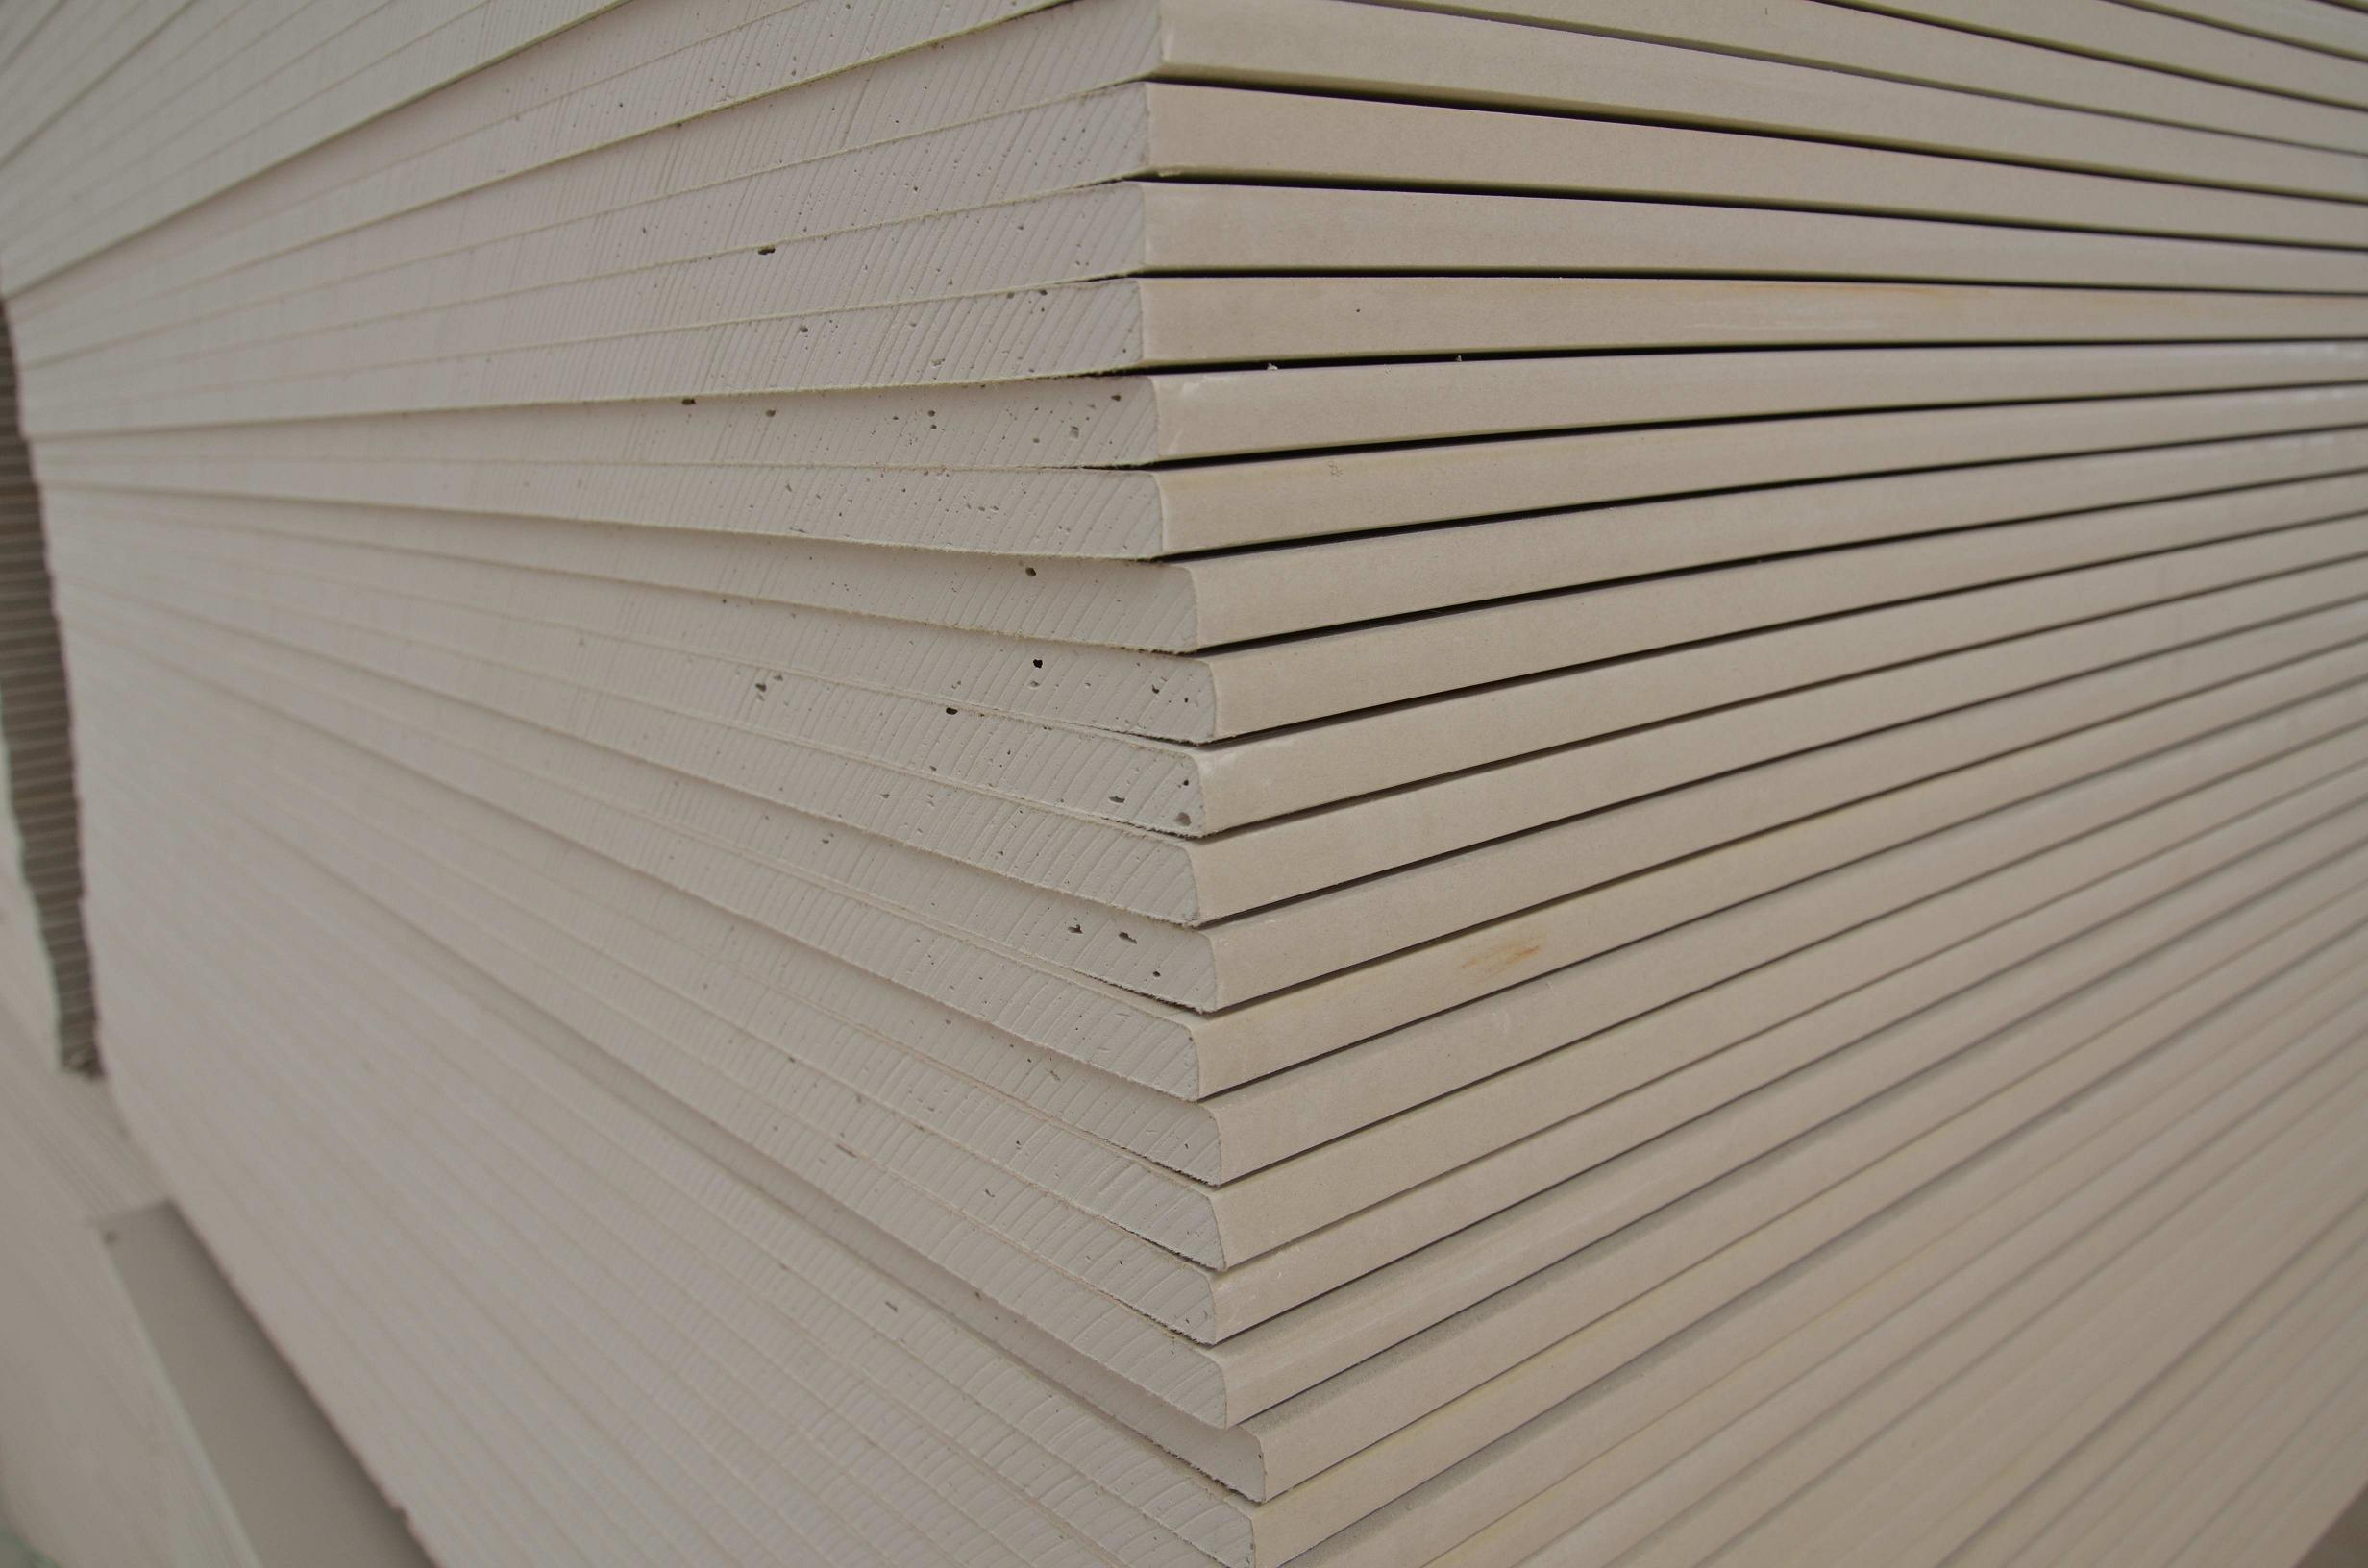 China paper faced gypsum board pvc plasterboard ceiling gypsum paper faced gypsum board pvc plasterboard ceiling gypsum ceiling panel pvc ceiling tile dailygadgetfo Gallery